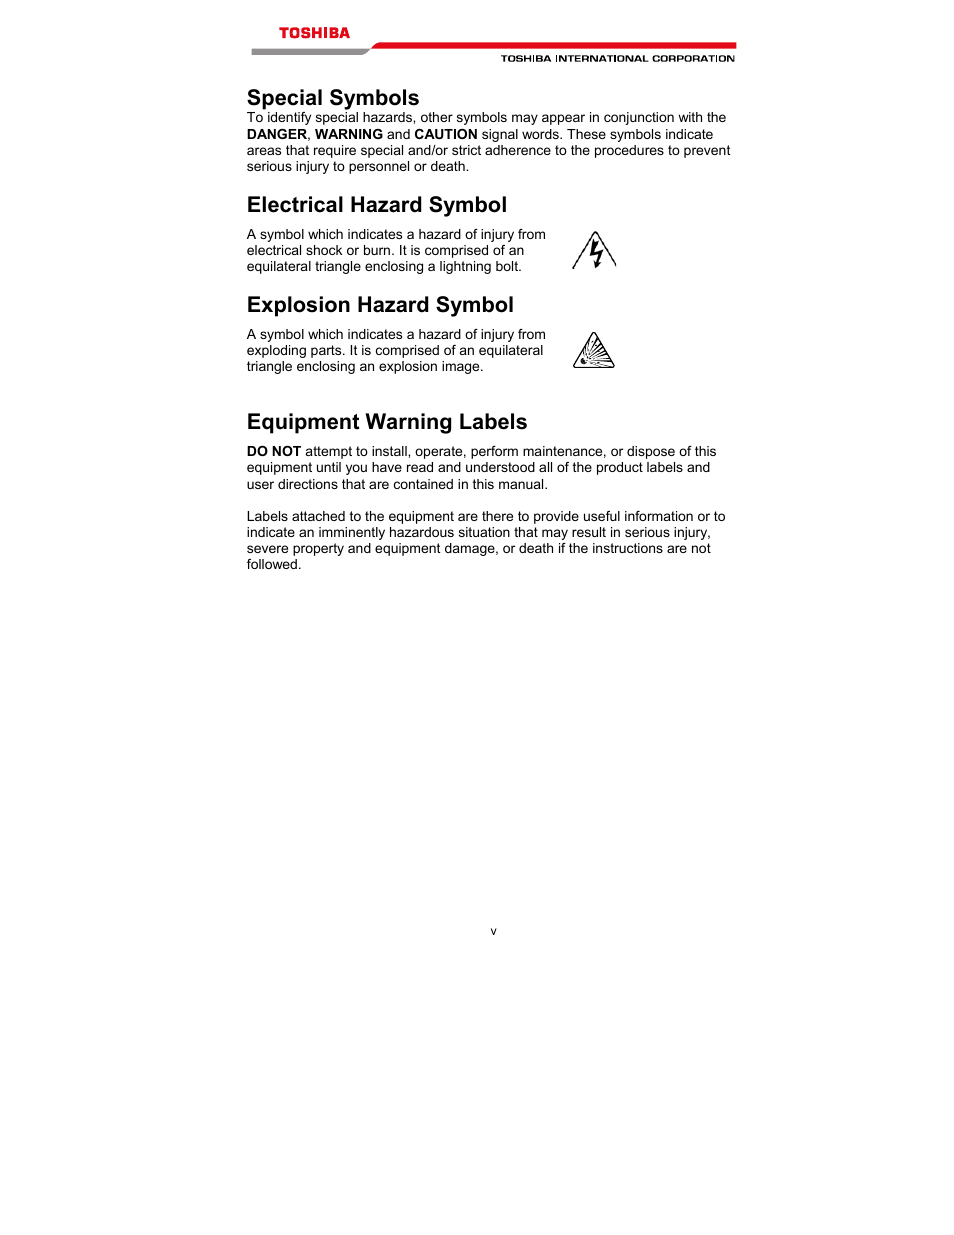 hight resolution of special symbols electrical hazard symbol explosion hazard symbol equipment warning labels toshiba